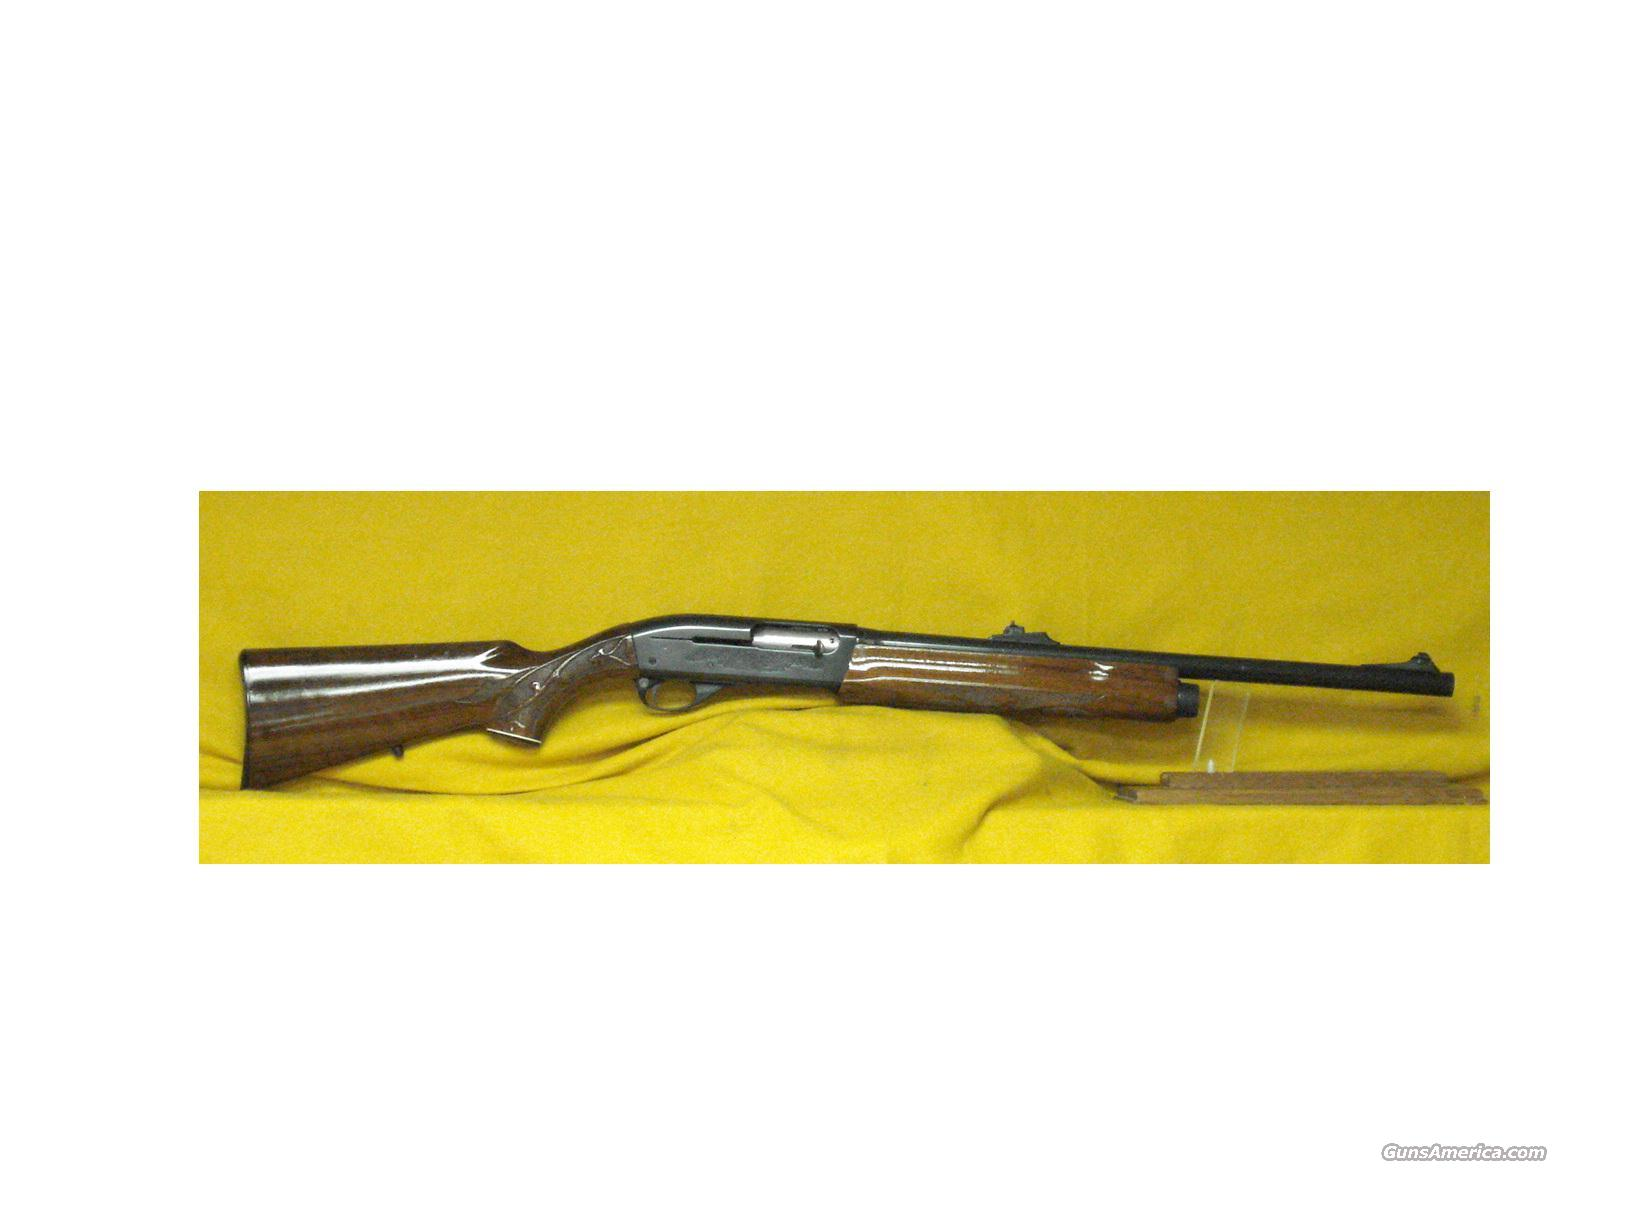 "REMINGTON 1100 12GA 20"" SLUG BARREL  Guns > Shotguns > Remington Shotguns  > Autoloaders > Hunting"